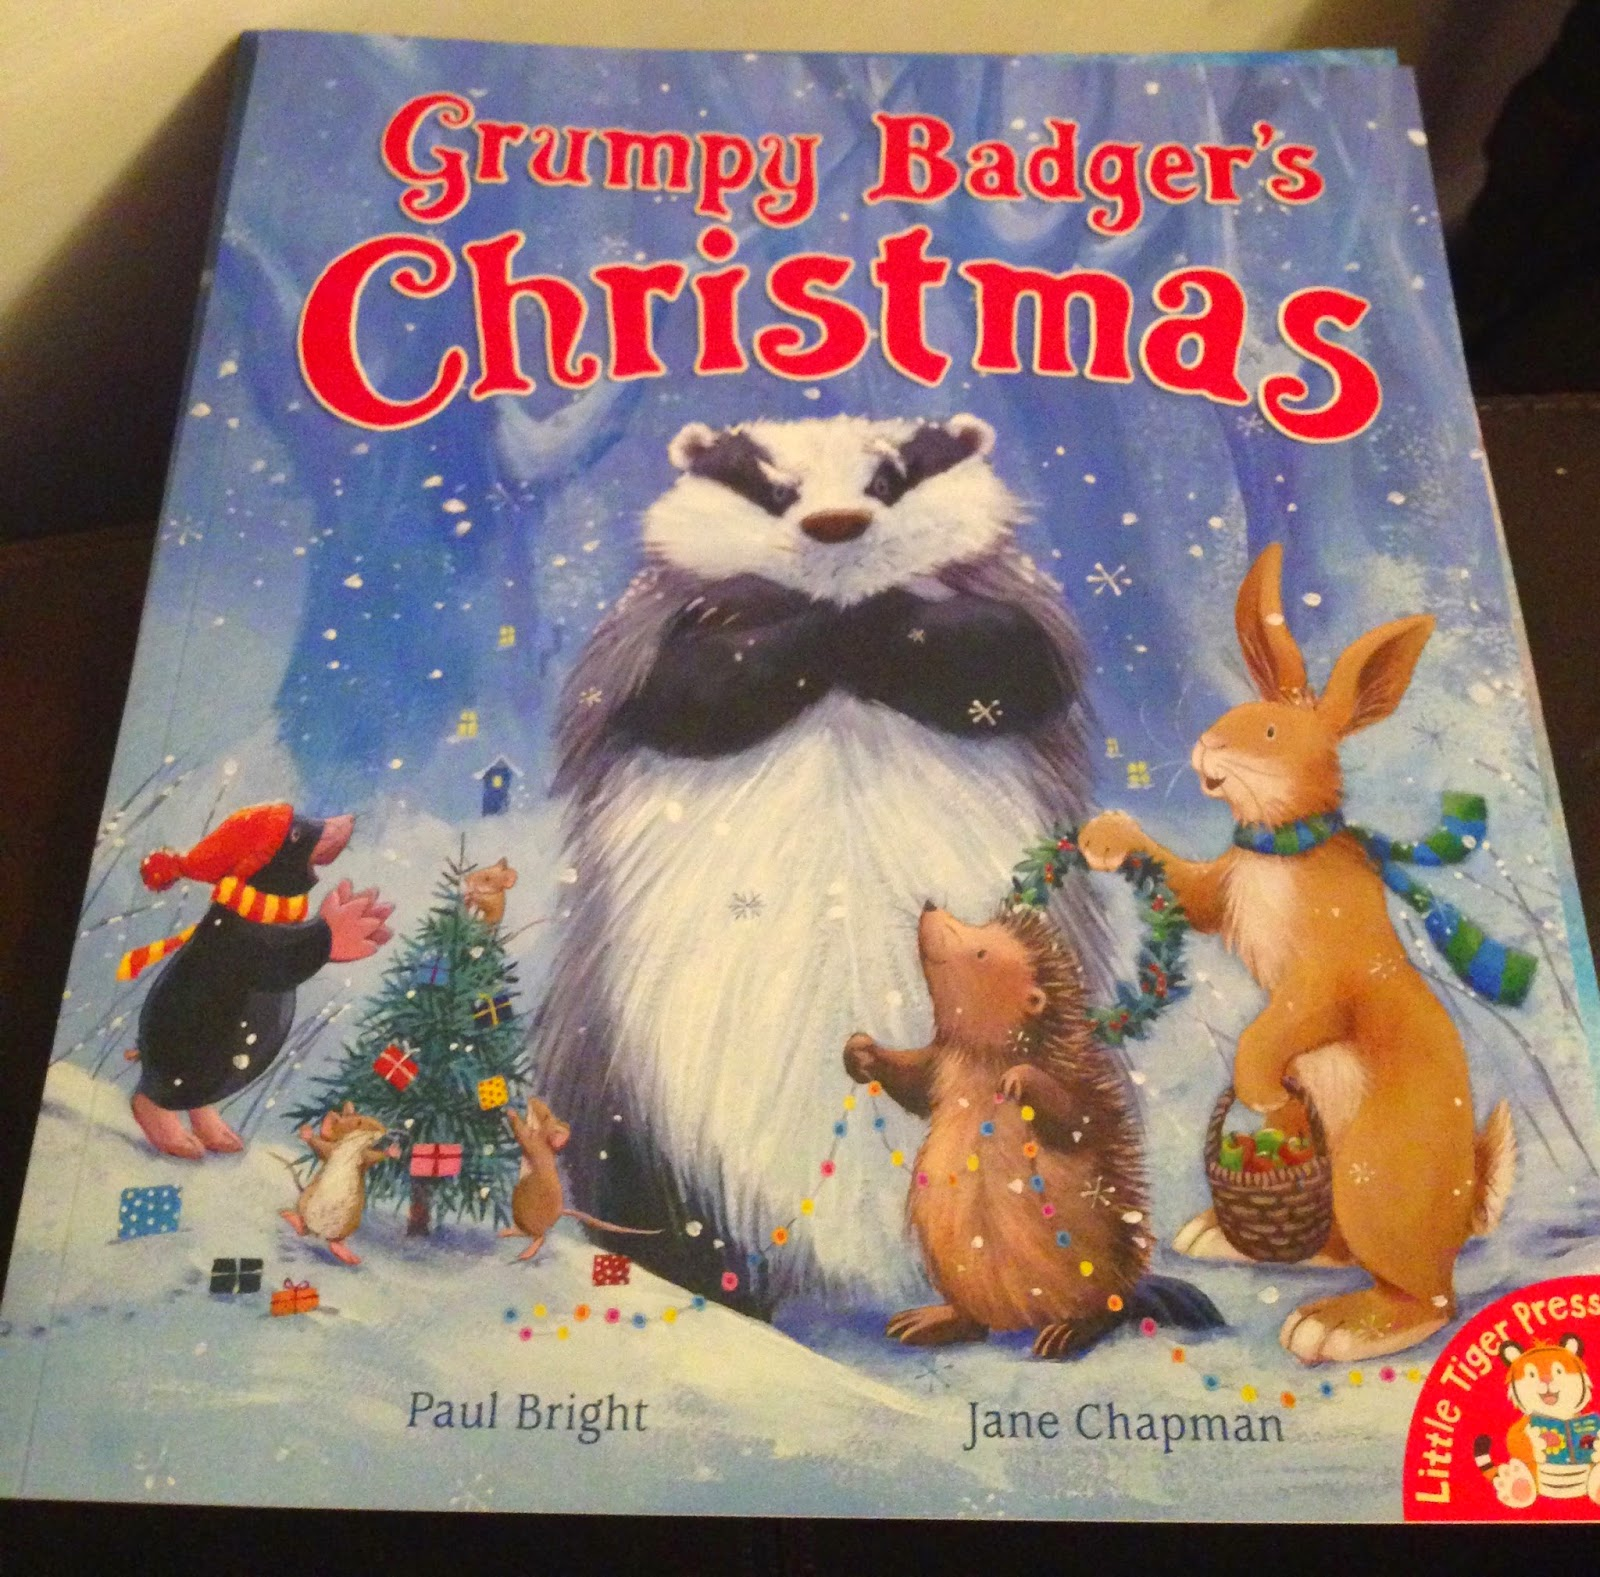 Our Christmas Book Advent tree | Ideas for the Best Children's Books to Buy this Christmas - Grumpy Badger's Christmas